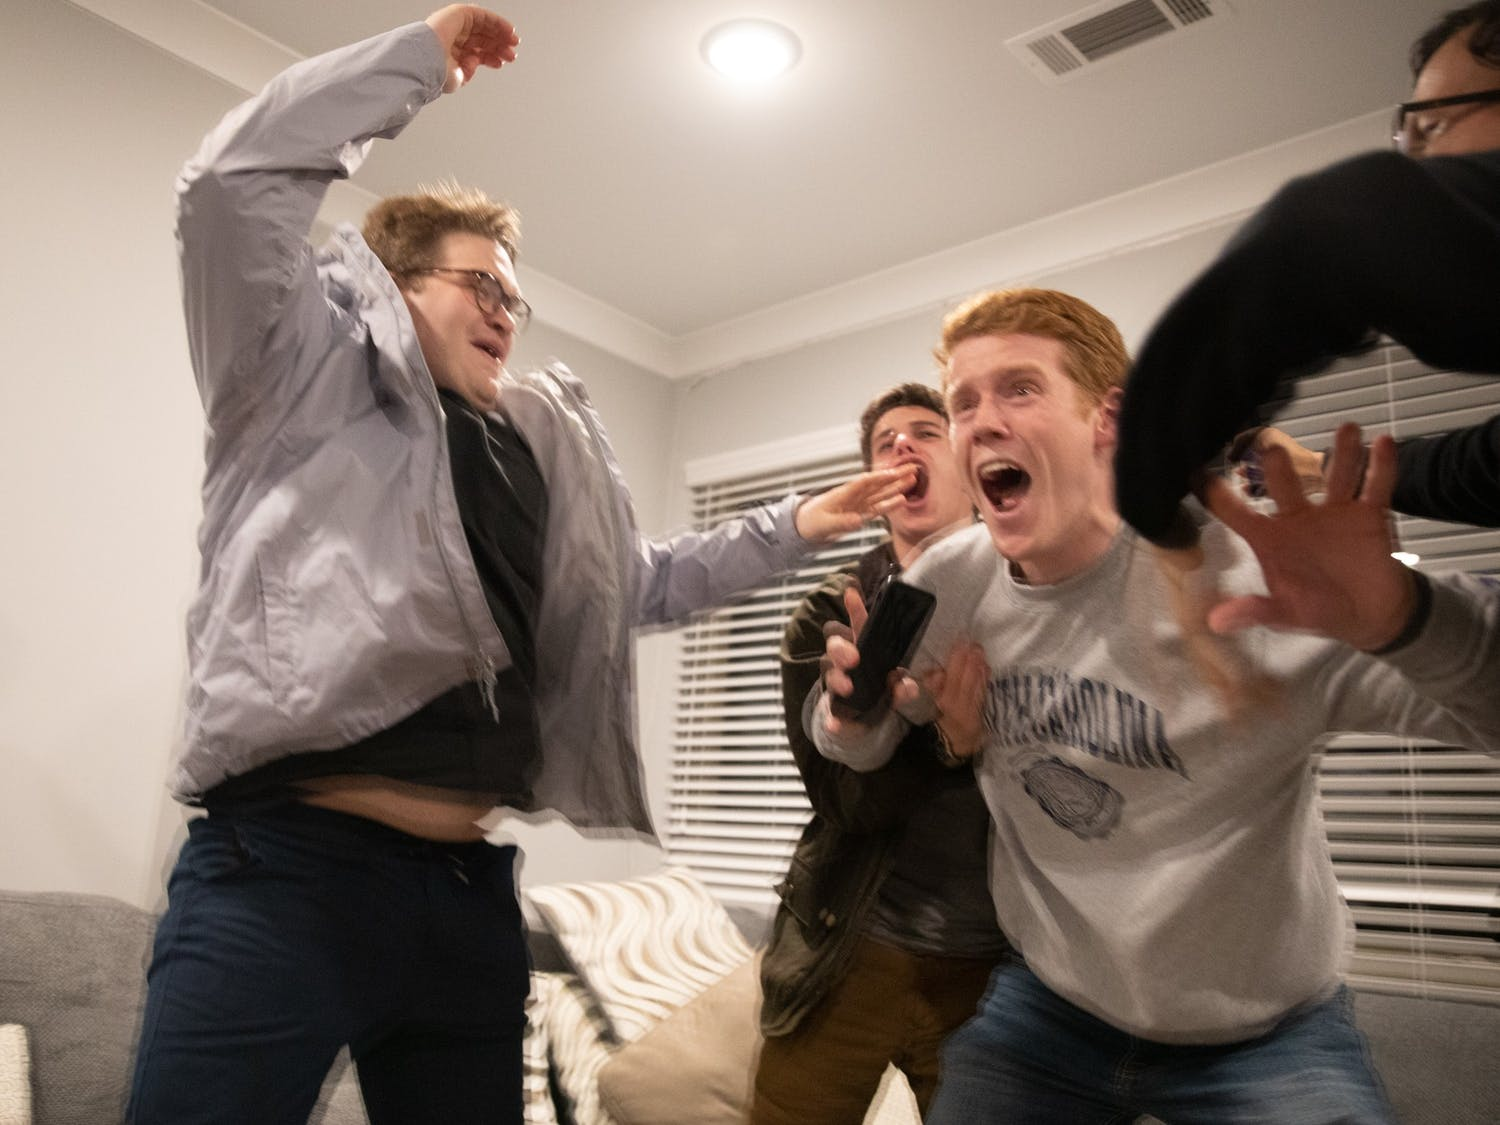 Student Body President-Elect Reeves Moseley (third from left) reacts to learning that he won the vote for student body president in an apartment in Carolina Square on Wednesday, Feb. 11, 2020. Moseley won about 70% of the vote.